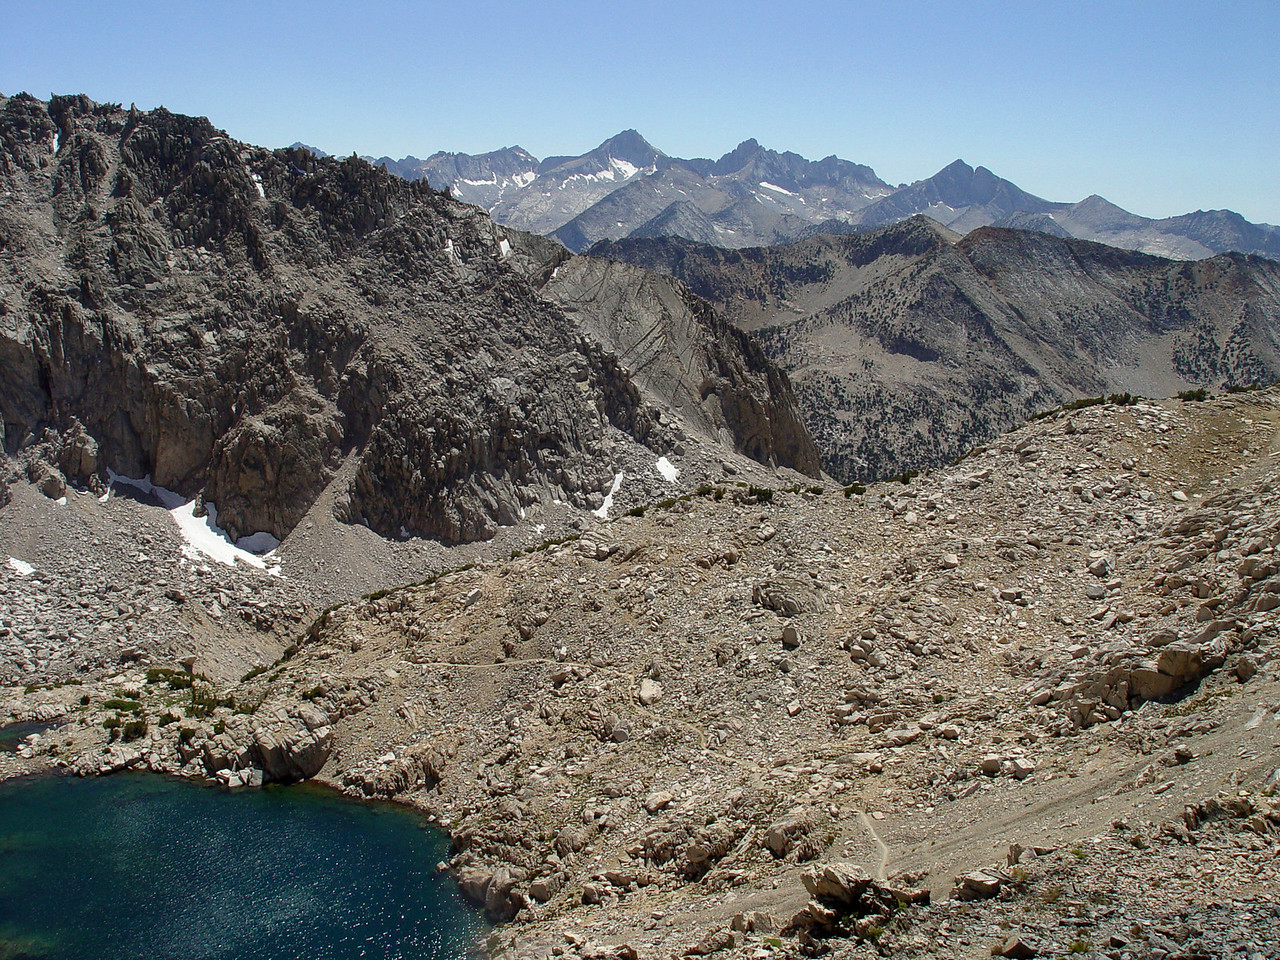 Looking south from Glen Pass